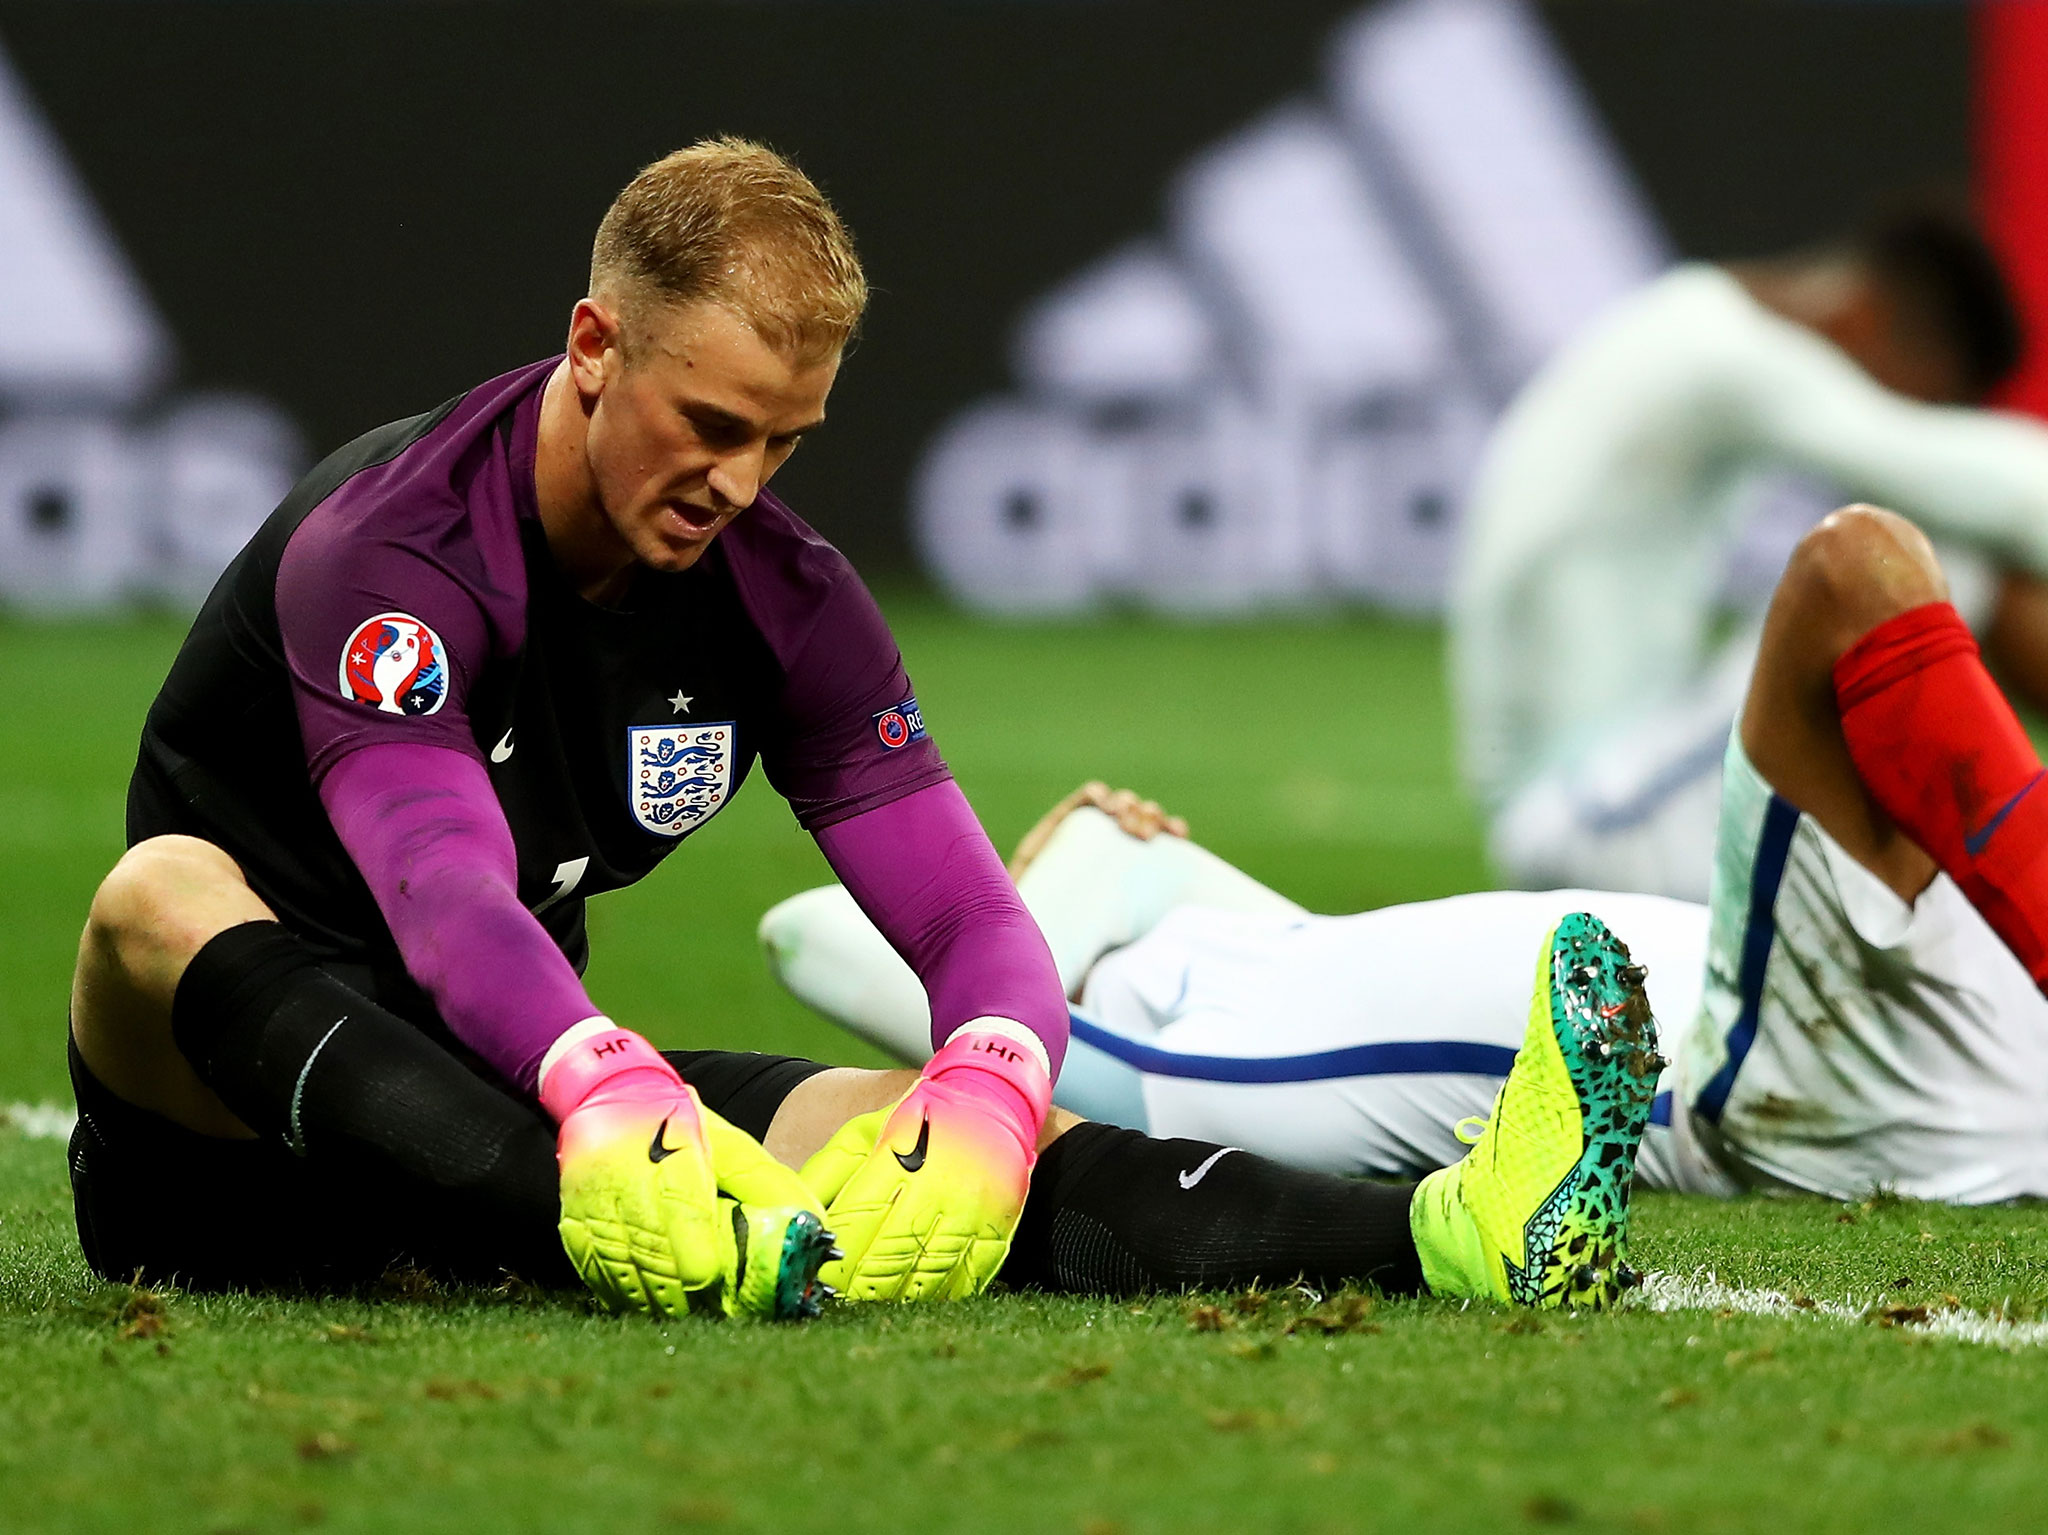 Slaven Bilic believes English football is taking West Ham's Joe Hart for granted